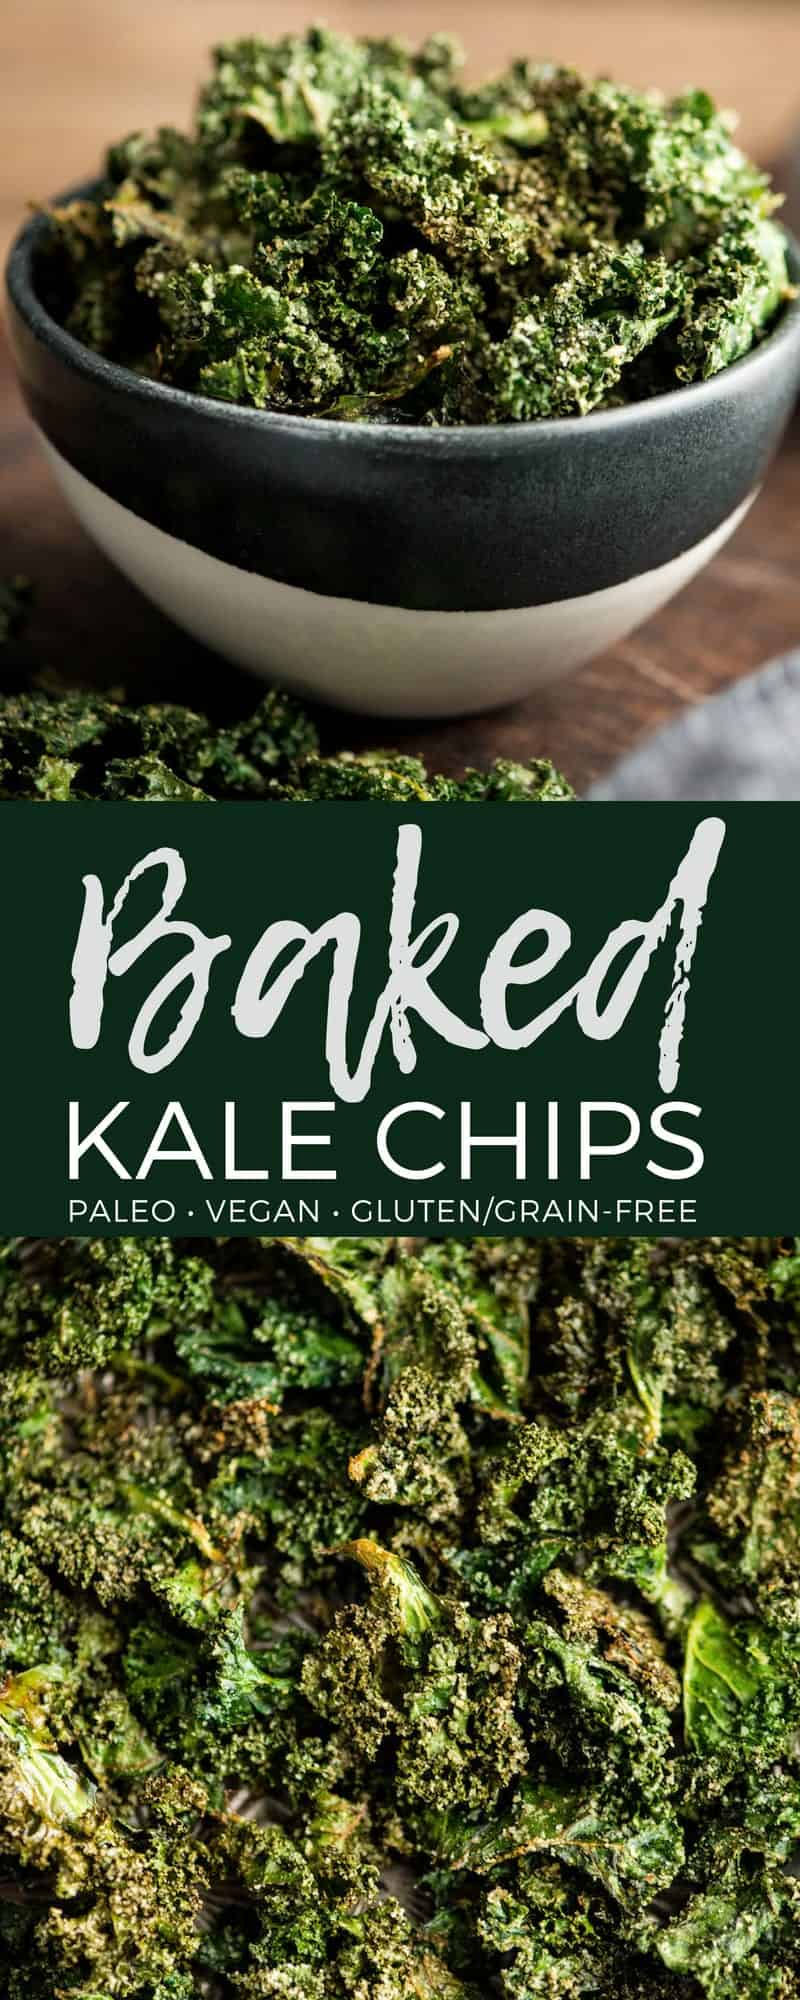 This recipe for Baked Kale Chips is seriously the best! This delicious, healthy, kid-friendly snack is made with only 5 ingredients and is a fantastic way to sneak some greens into your day! #kalechips #kale #baked #glutenfree #grainfree #dairyfree #paleo #vegan #sugarfree #snack #kidfriendly